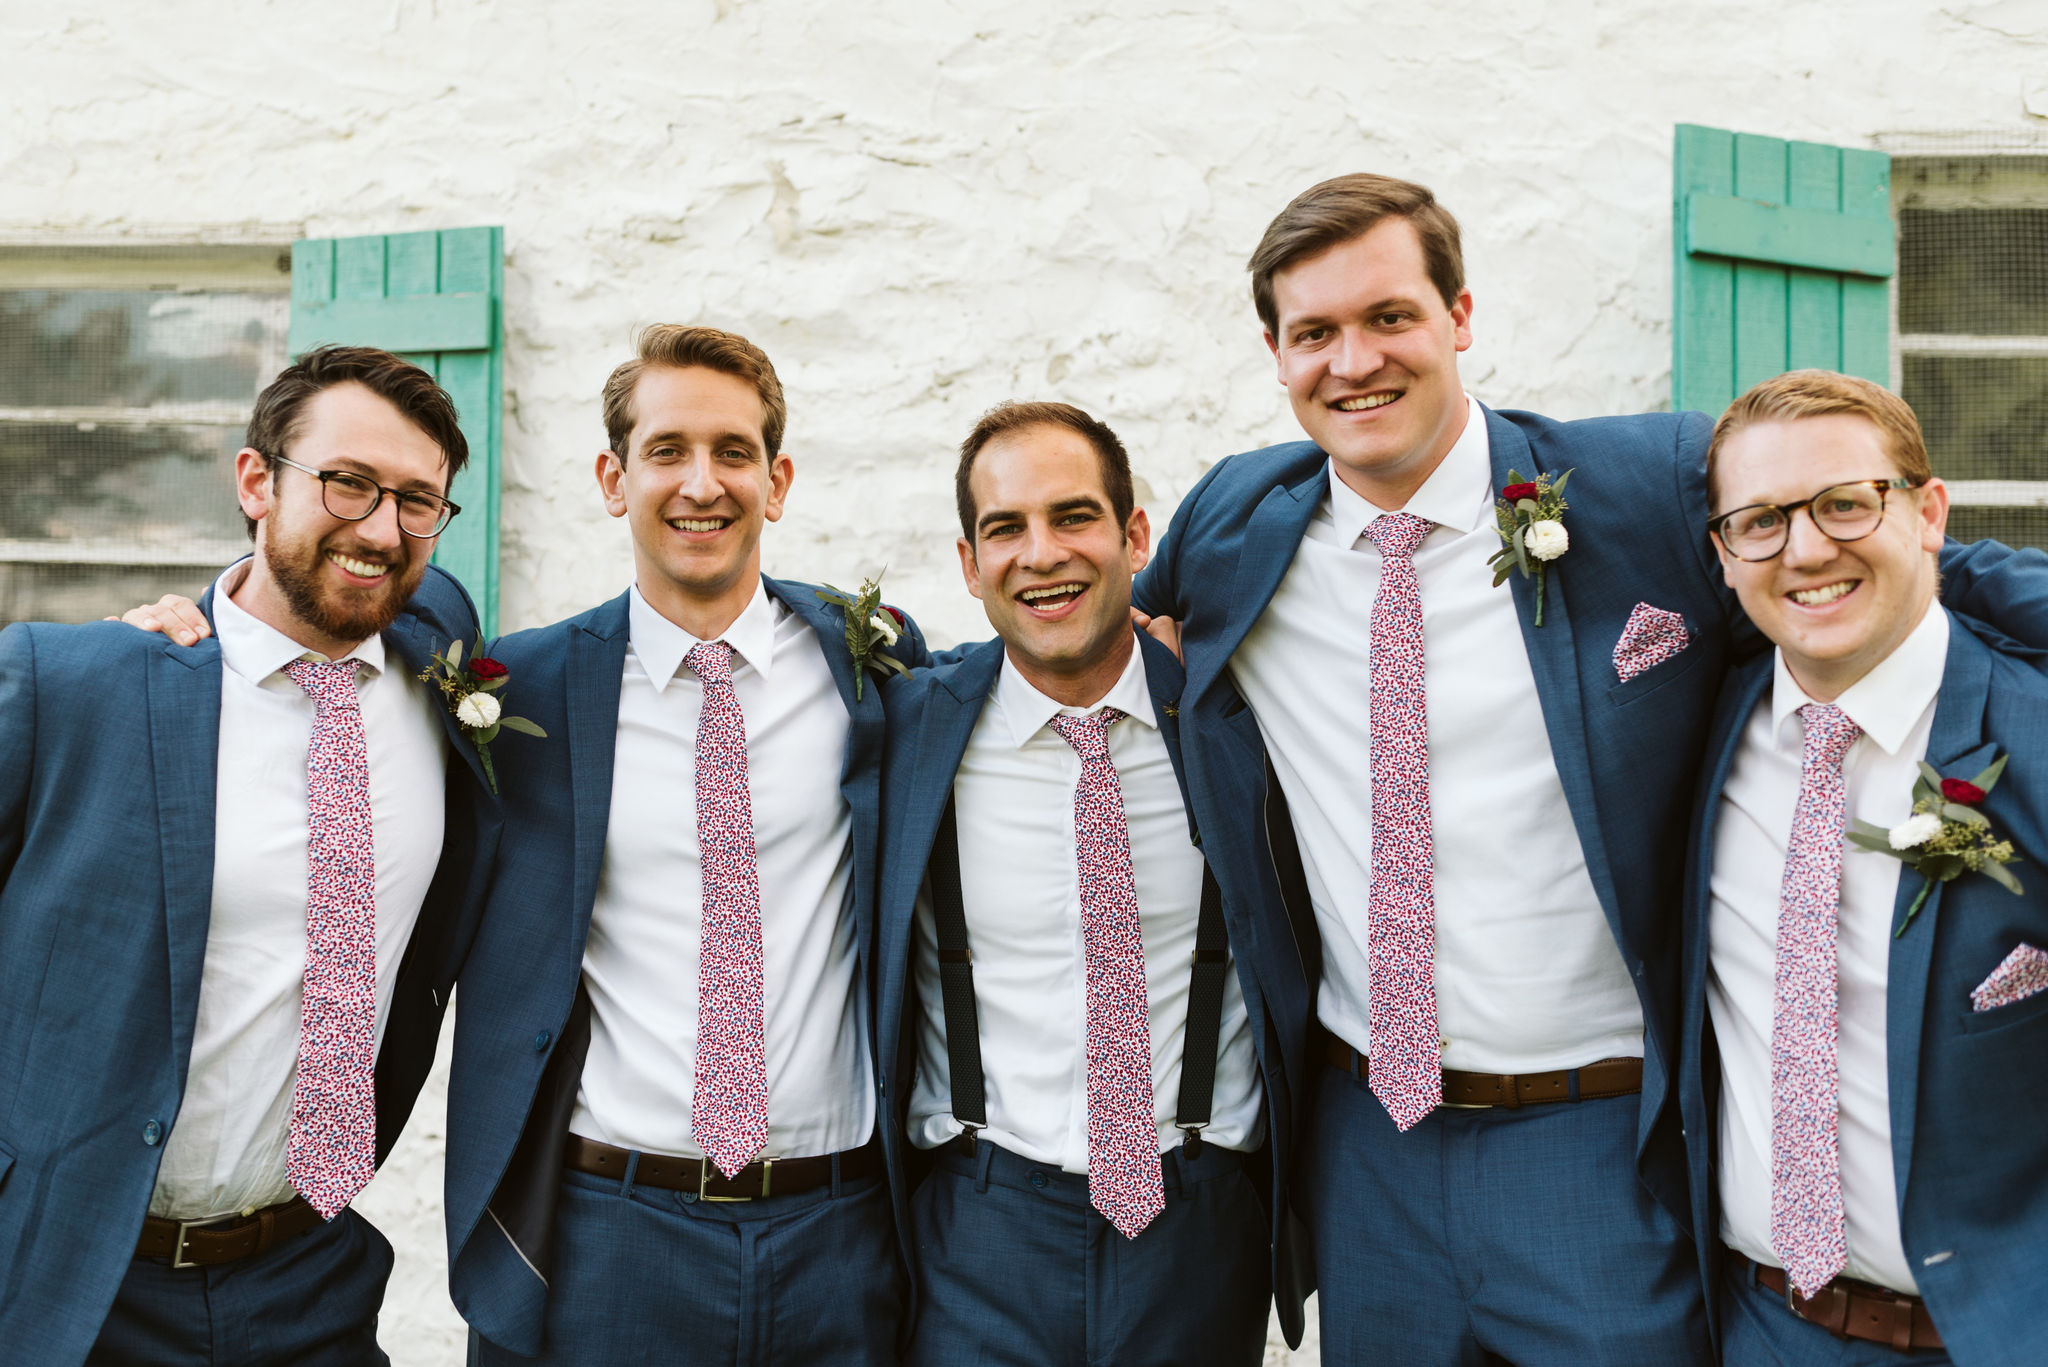 Phoenix Maryland, Baltimore Wedding Photographer, Eagle's Nest Country Club, Classic, Romantic, Portrait of Groom with Groomsmen, Generation Tux Blue Suits, Knotty Tie Ties and Pocketsquares, Red and White Boutonnieres